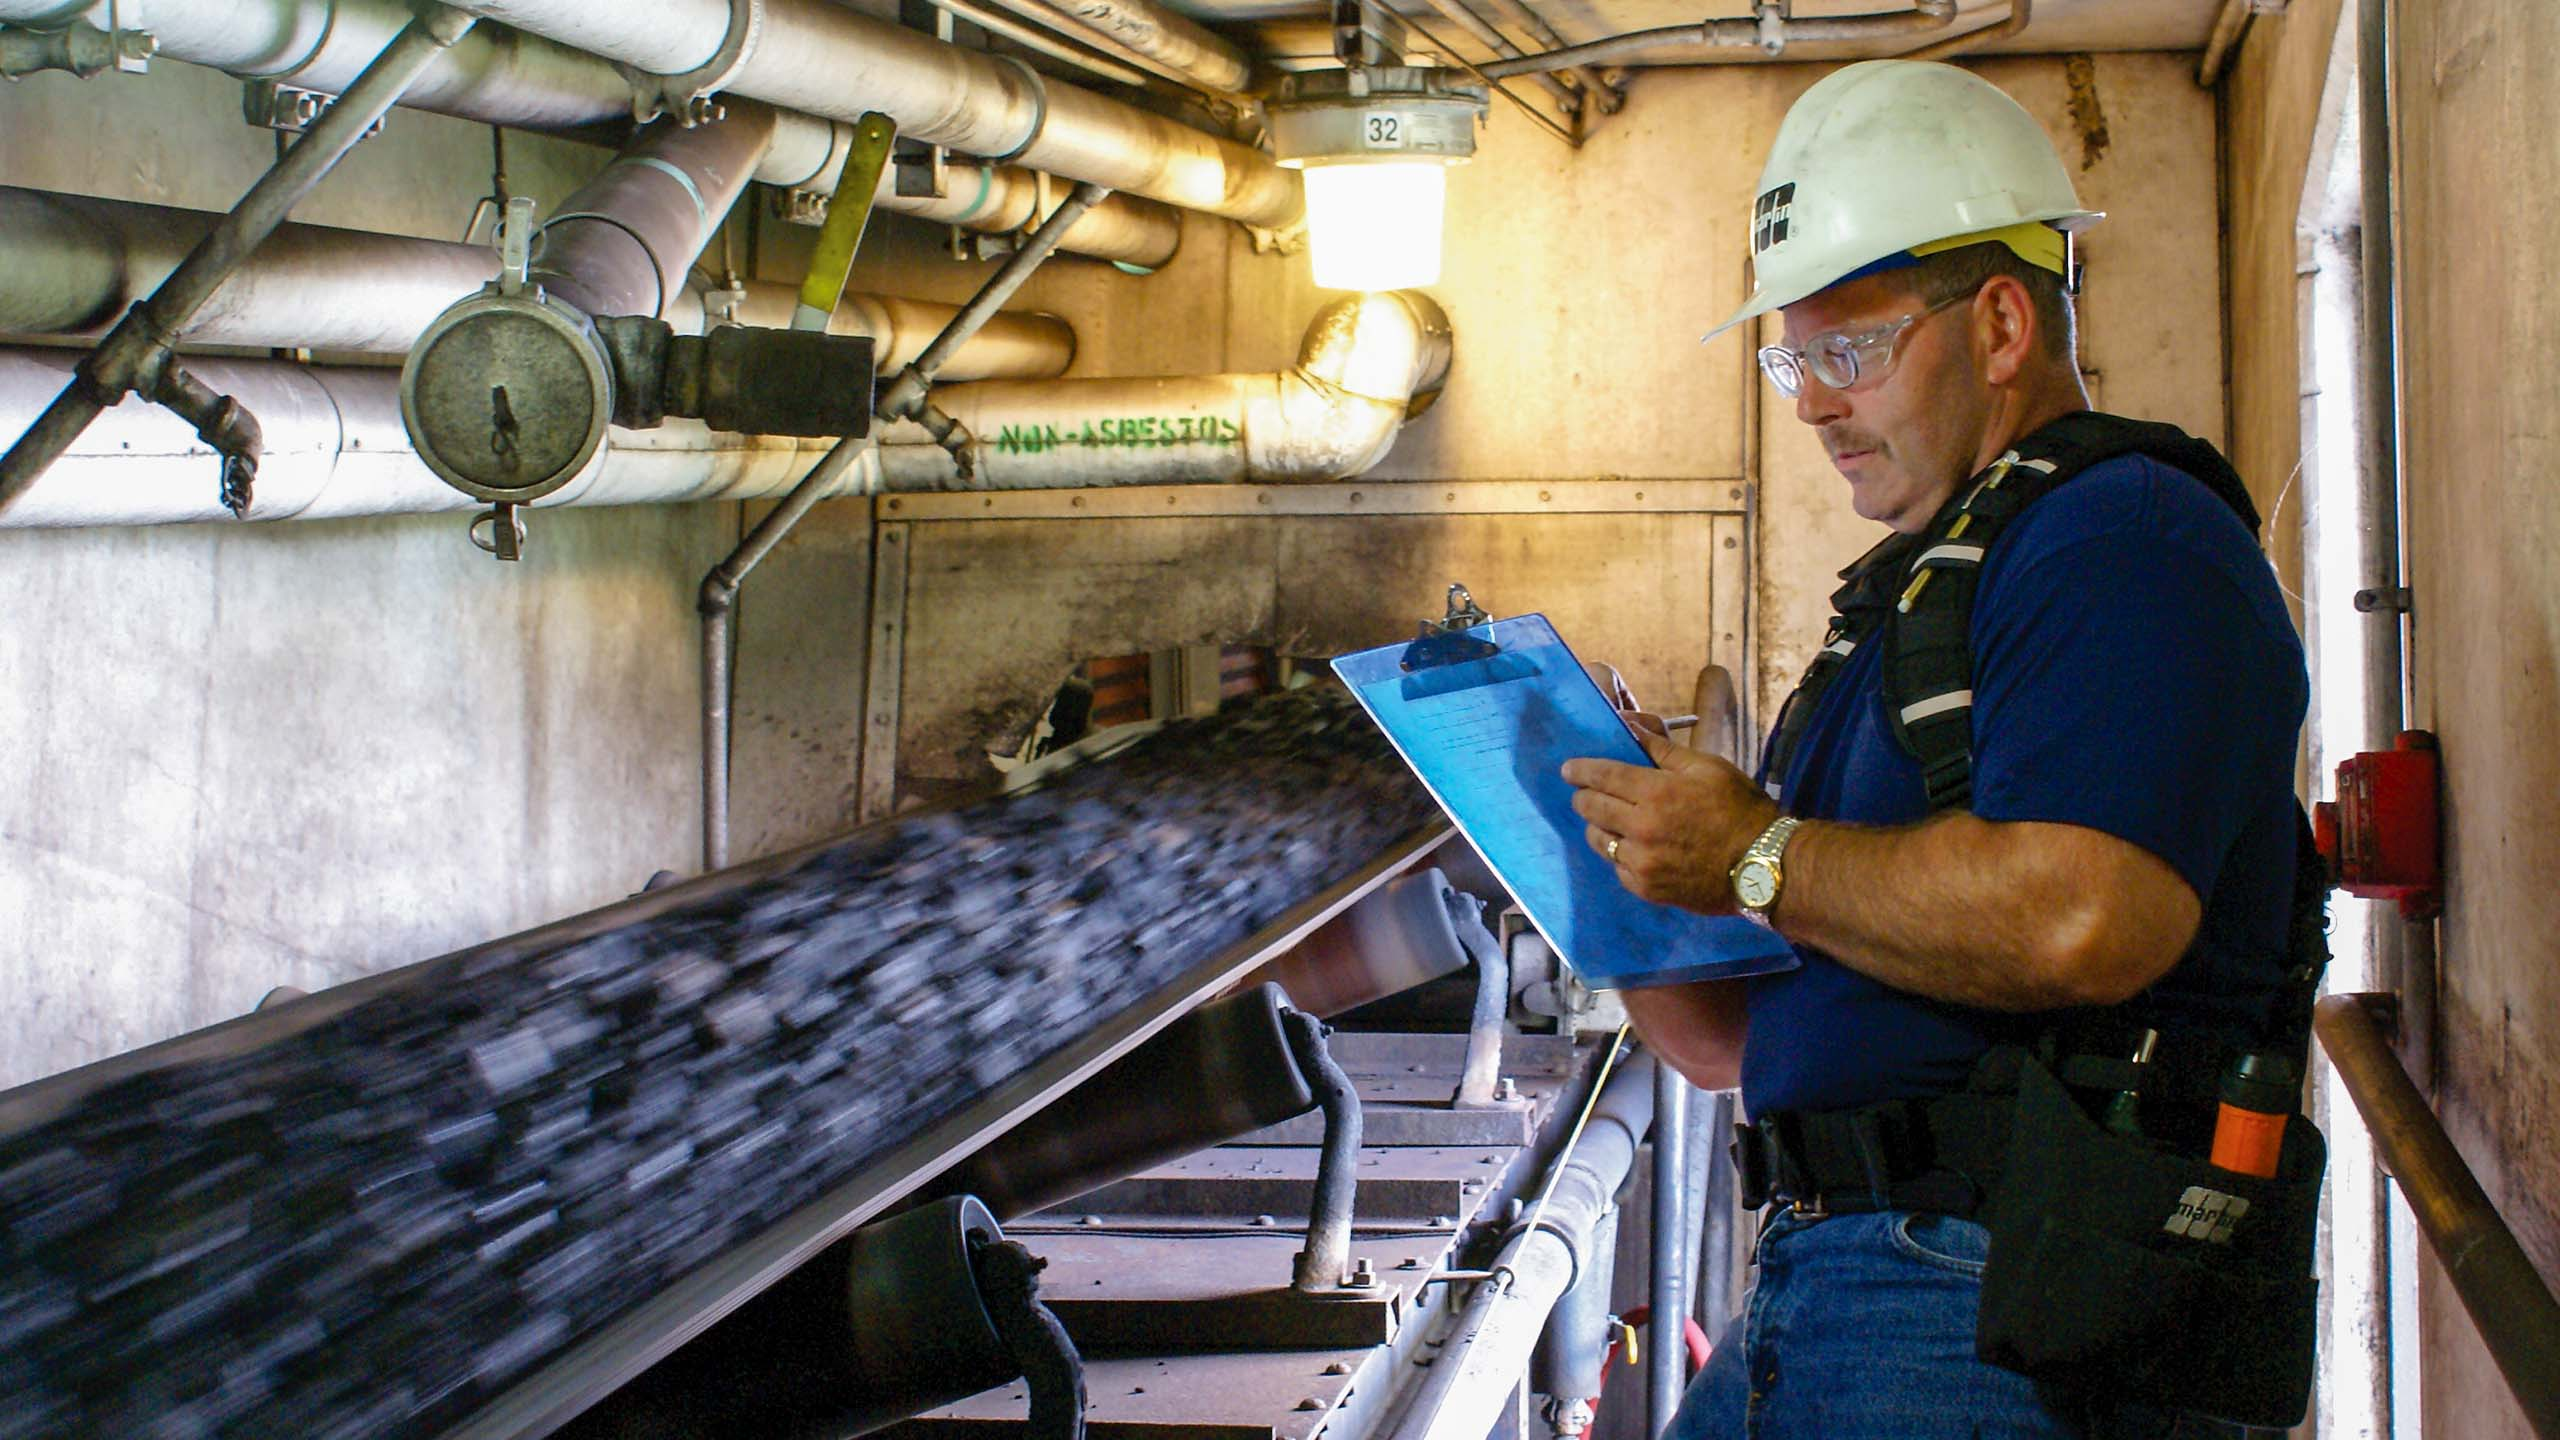 Inspecting conveyor belts improves performance and safety